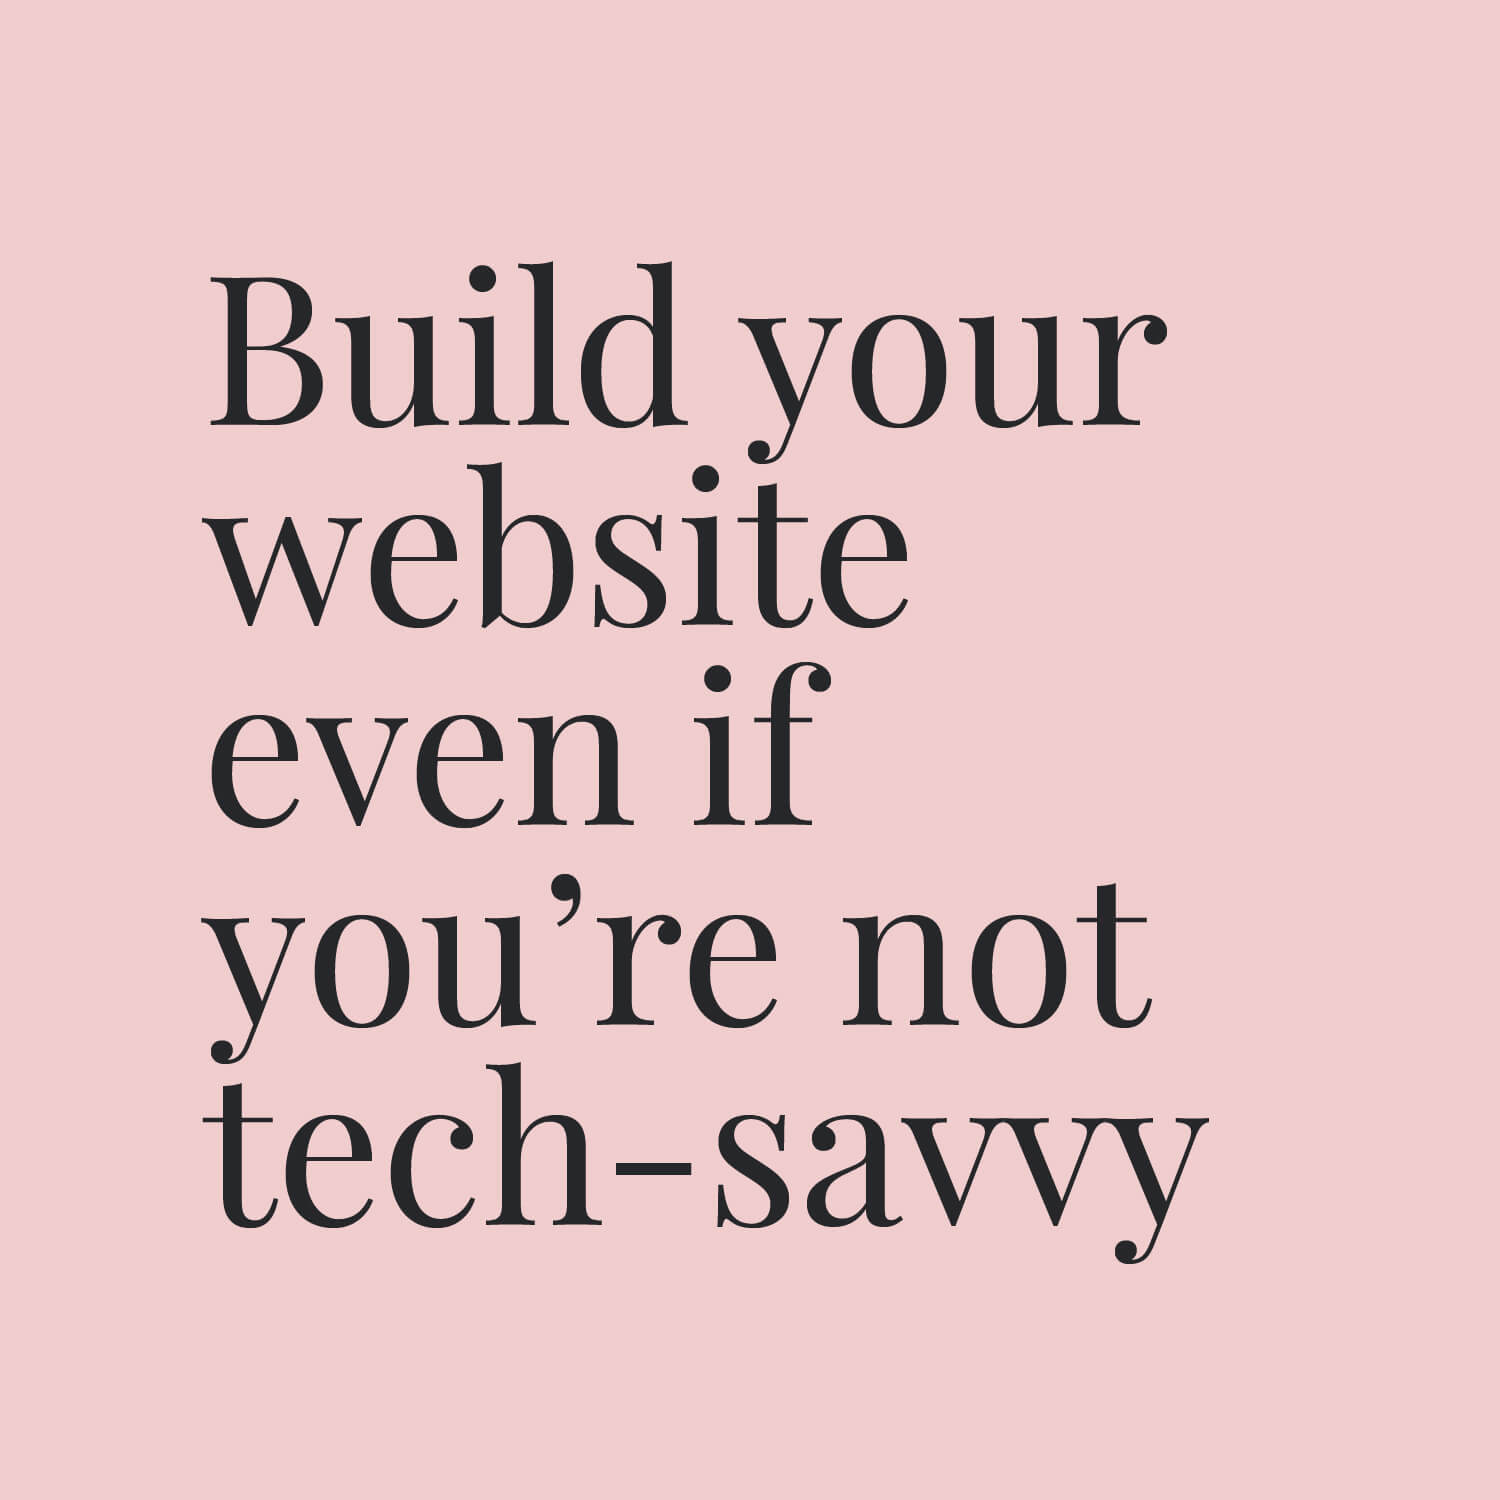 Build your website in a week even if you're not tech-savvy small.jpg